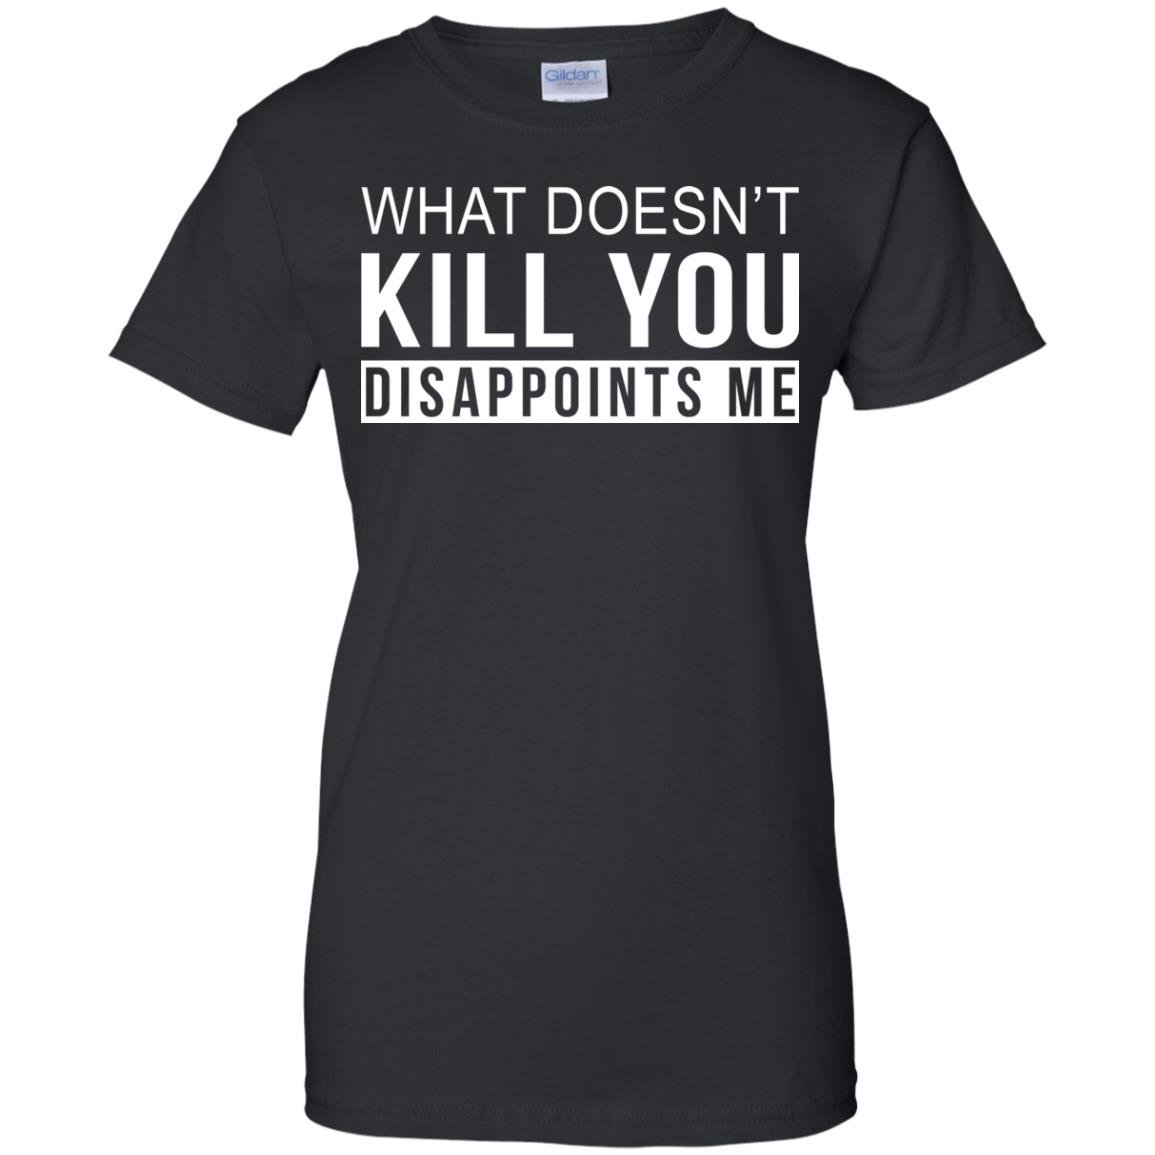 image 272 - What Doesn't Kill You Disappoints Shirt, Hoodie, Sweatshirt